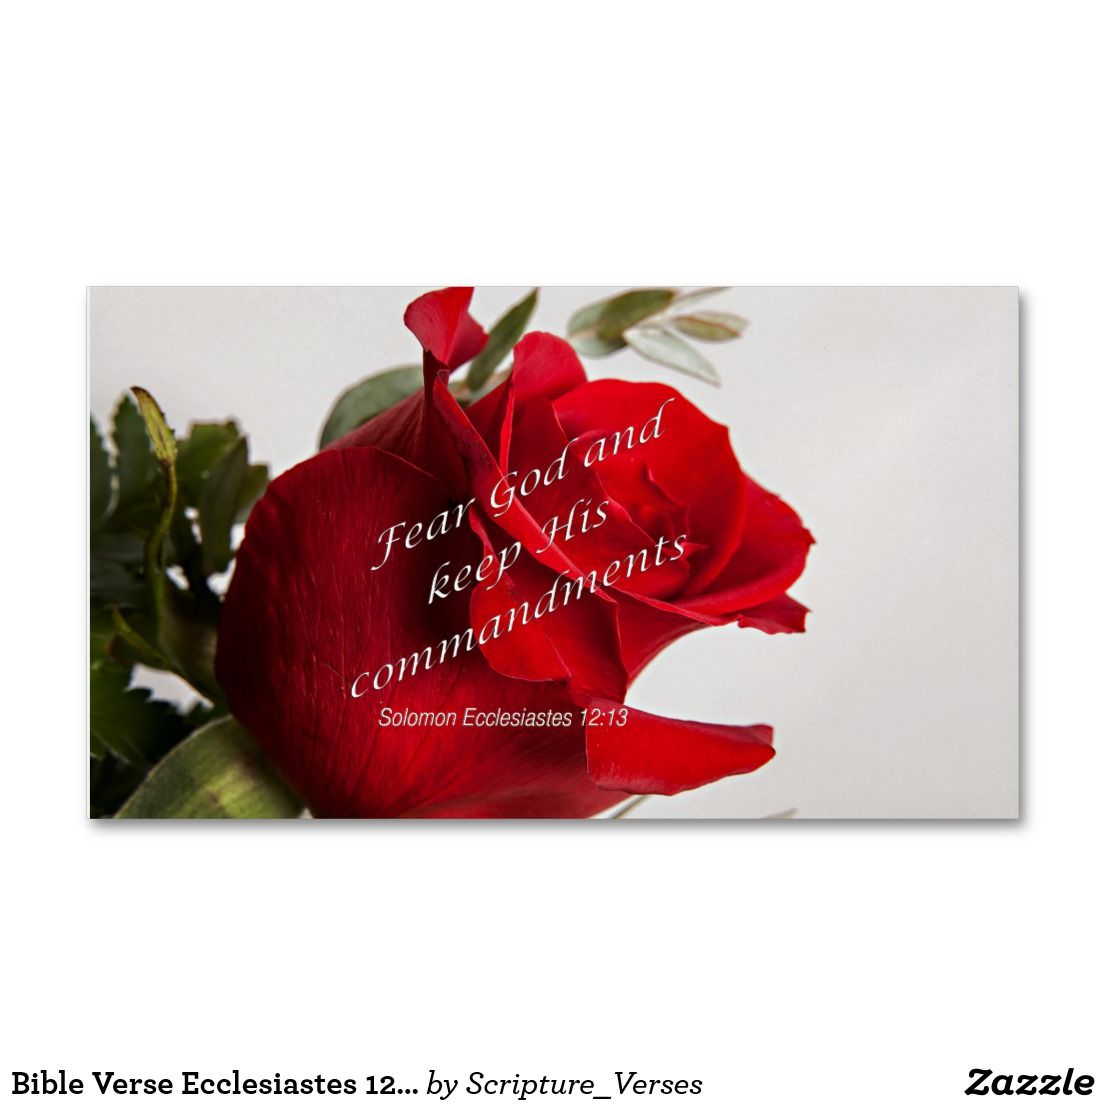 Bible Verse Ecclesiastes 12-13 Business Cards   business card ...